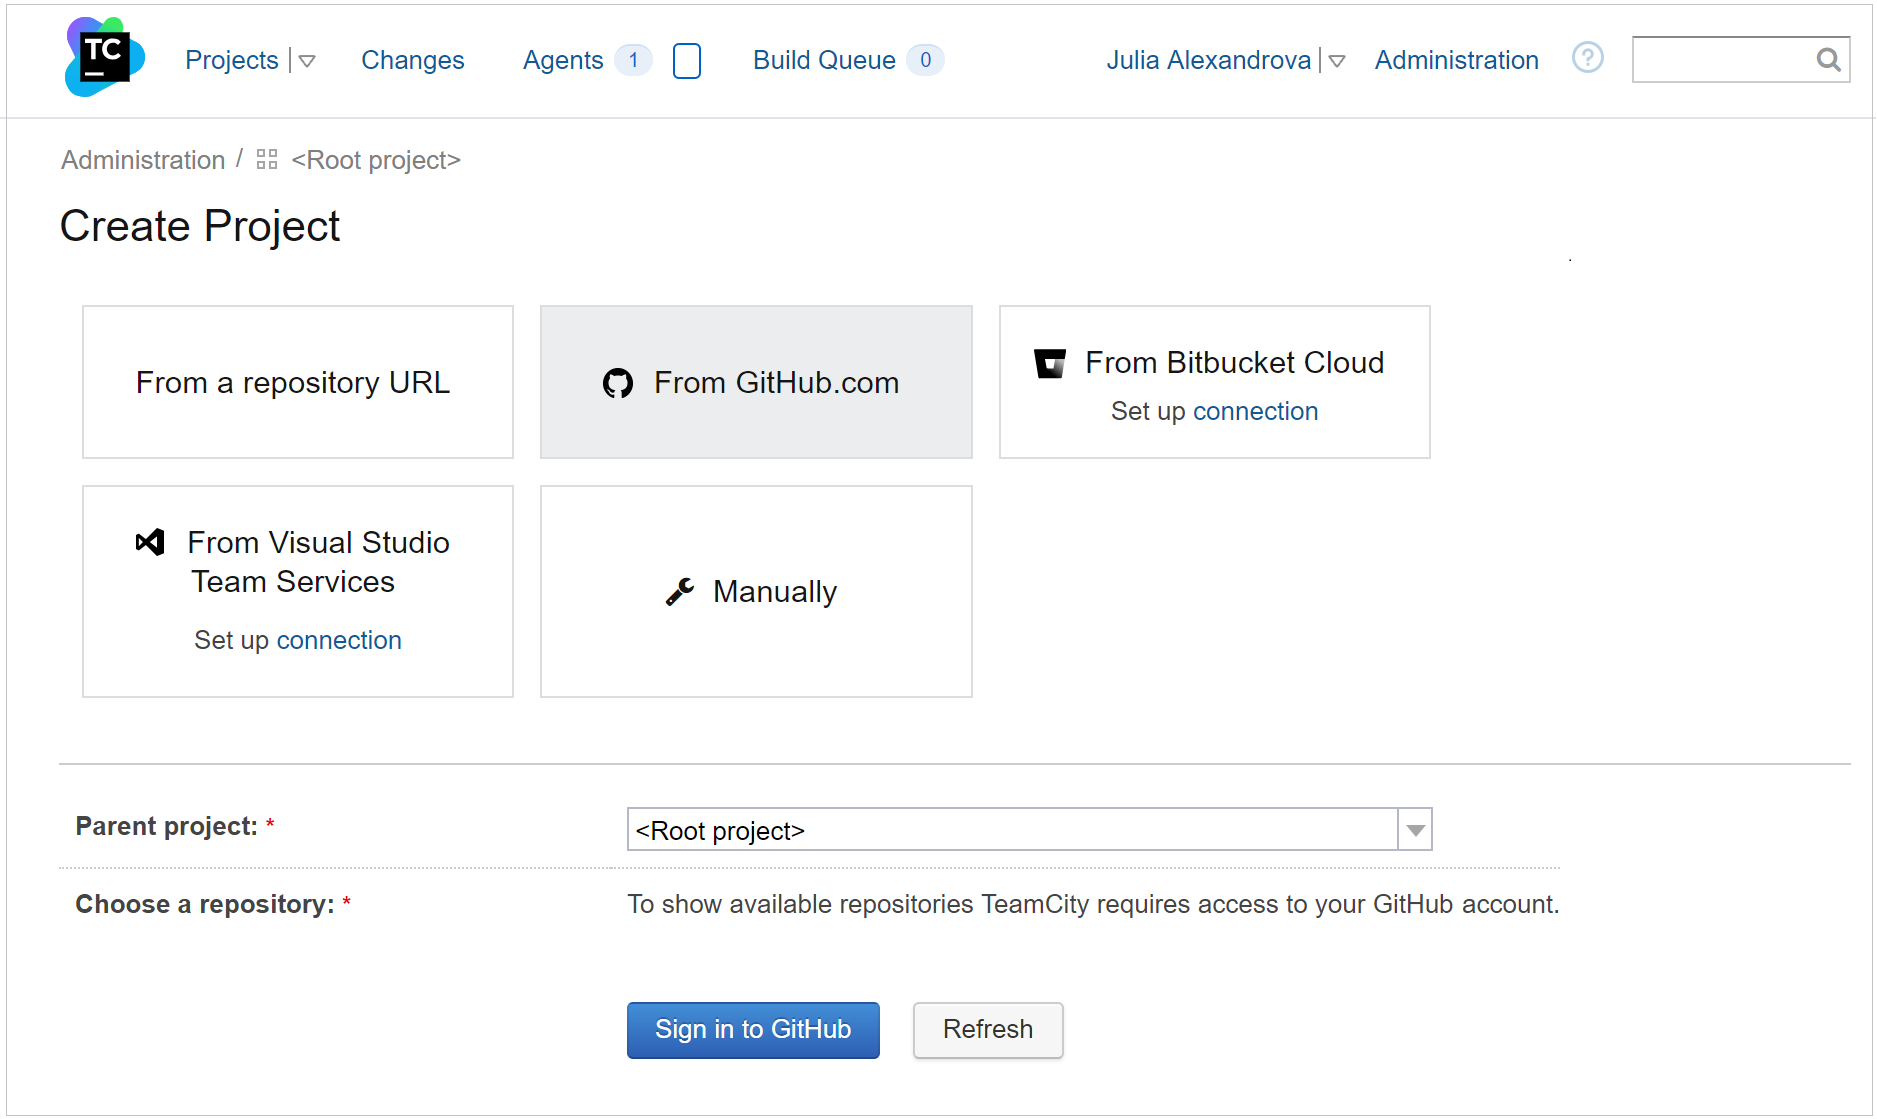 Sign in to GitHub